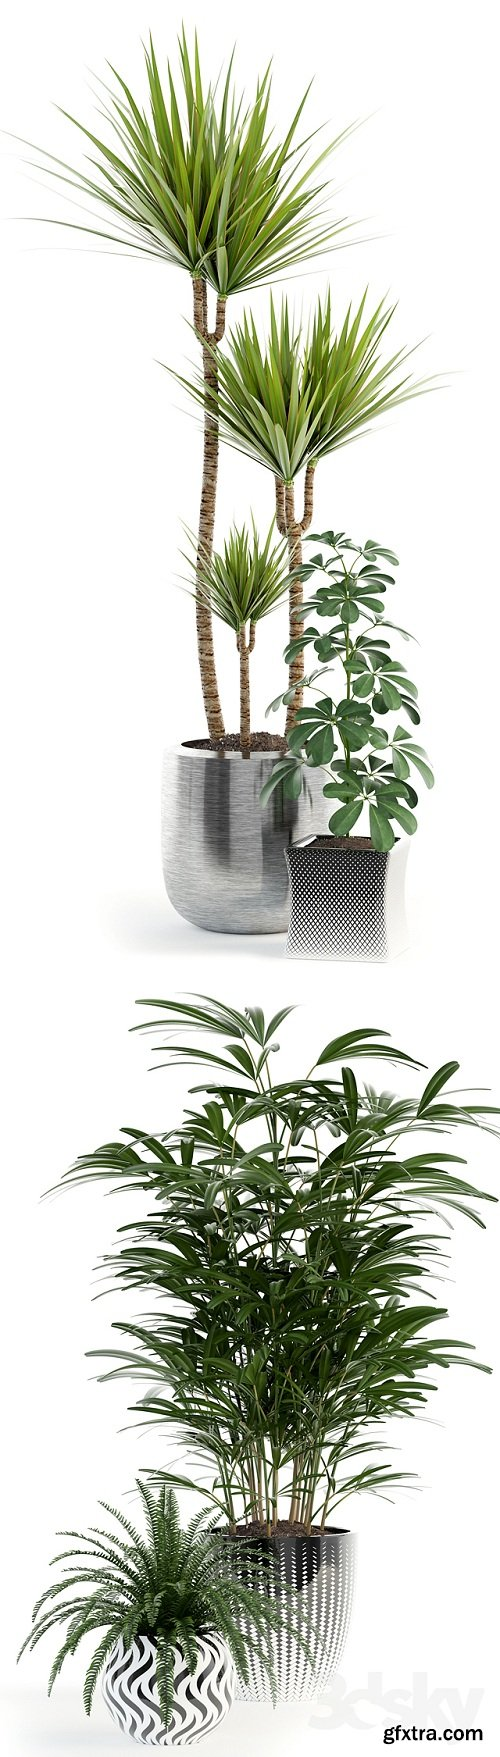 Collection of plants 90